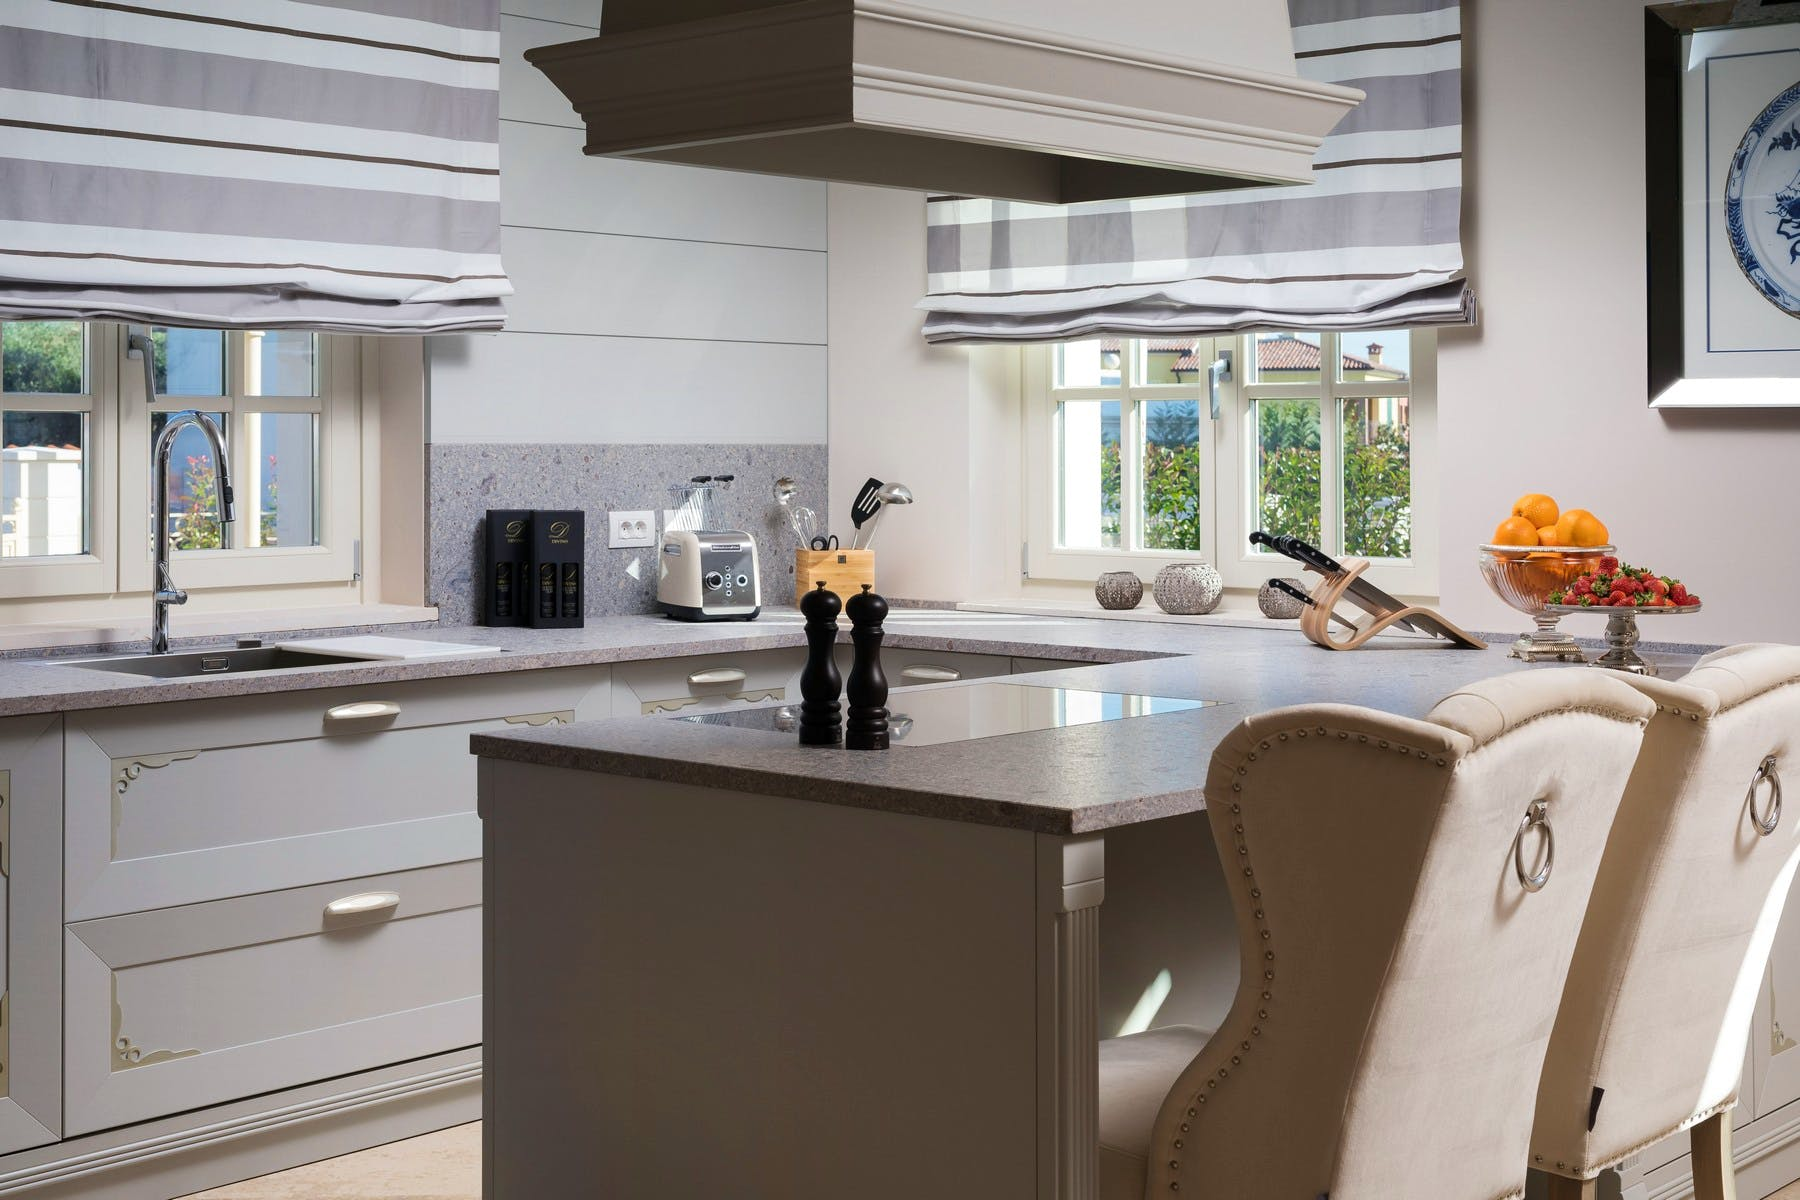 Fully-equipped and elegant kitchen area